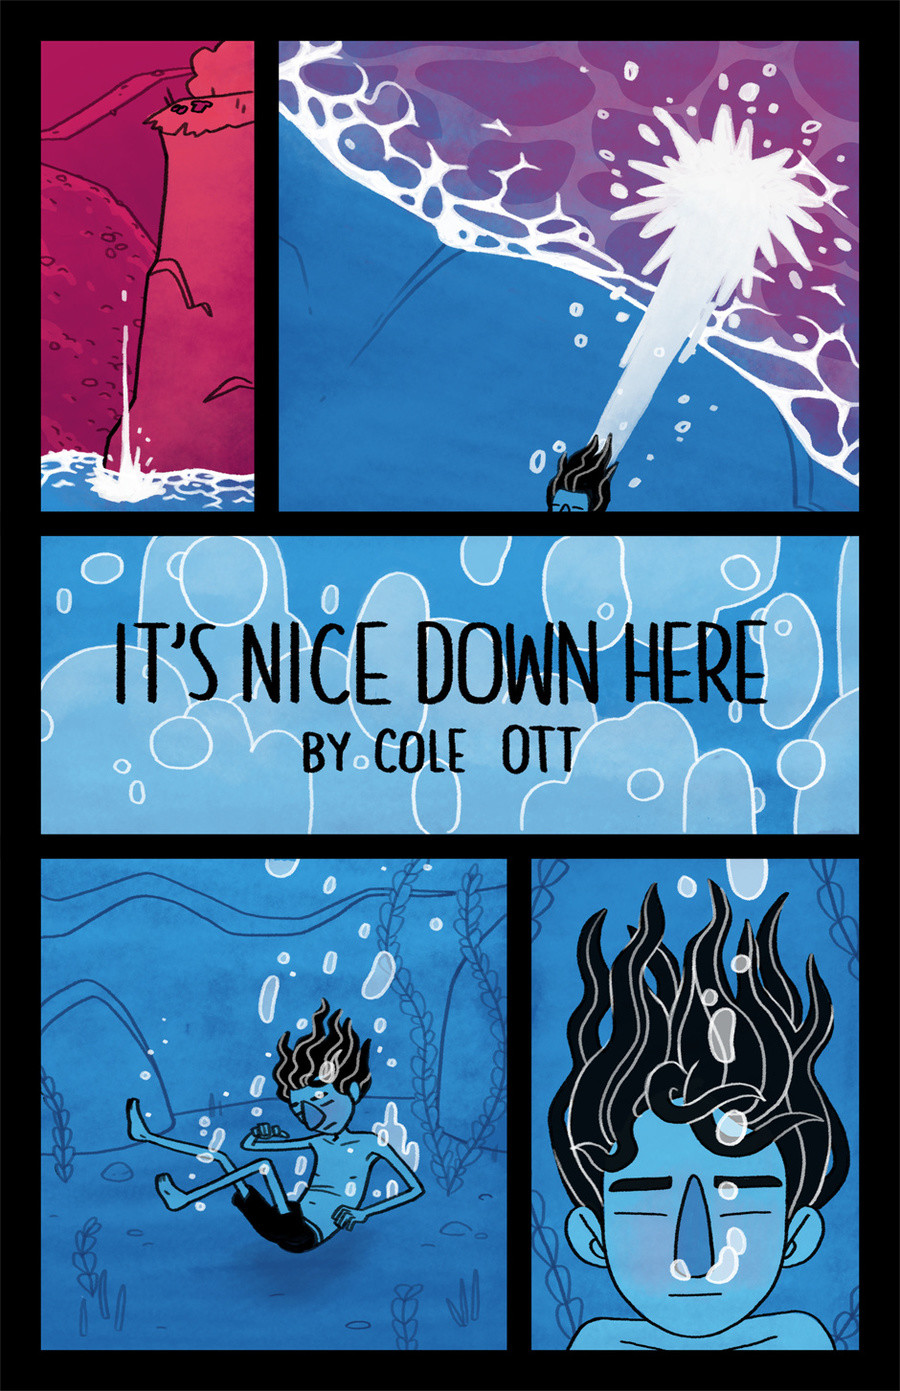 It's Nice Down Here. .. The way I see it, this whole comic is about life and death. The man jumps into the water (that's him being born), he meets a fish, has children, lives a long, w